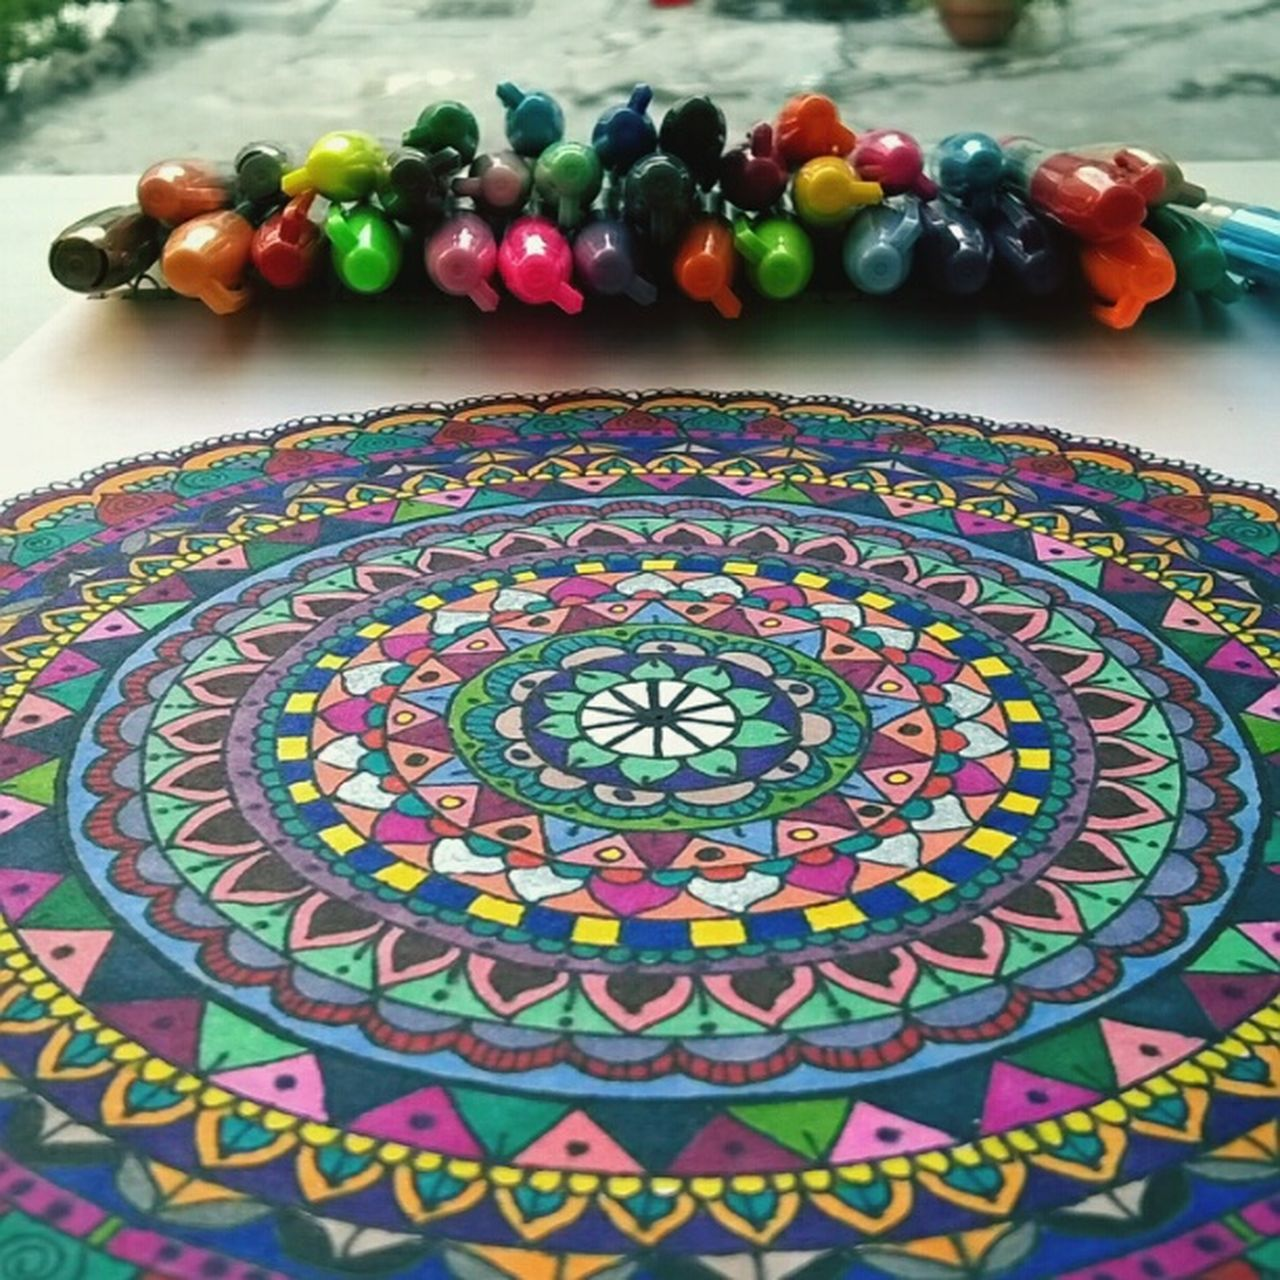 Multi Colored Celebration No People Indoors  Close-up Day Astrology Sign Drawing Drawings EyeEm Gallery First Eyeem Photo Eyemphotography Colorful Colors Clorful Mandala Mandalay Zentangle Zentangles Zentangleart Zentangle Art Mandala Art